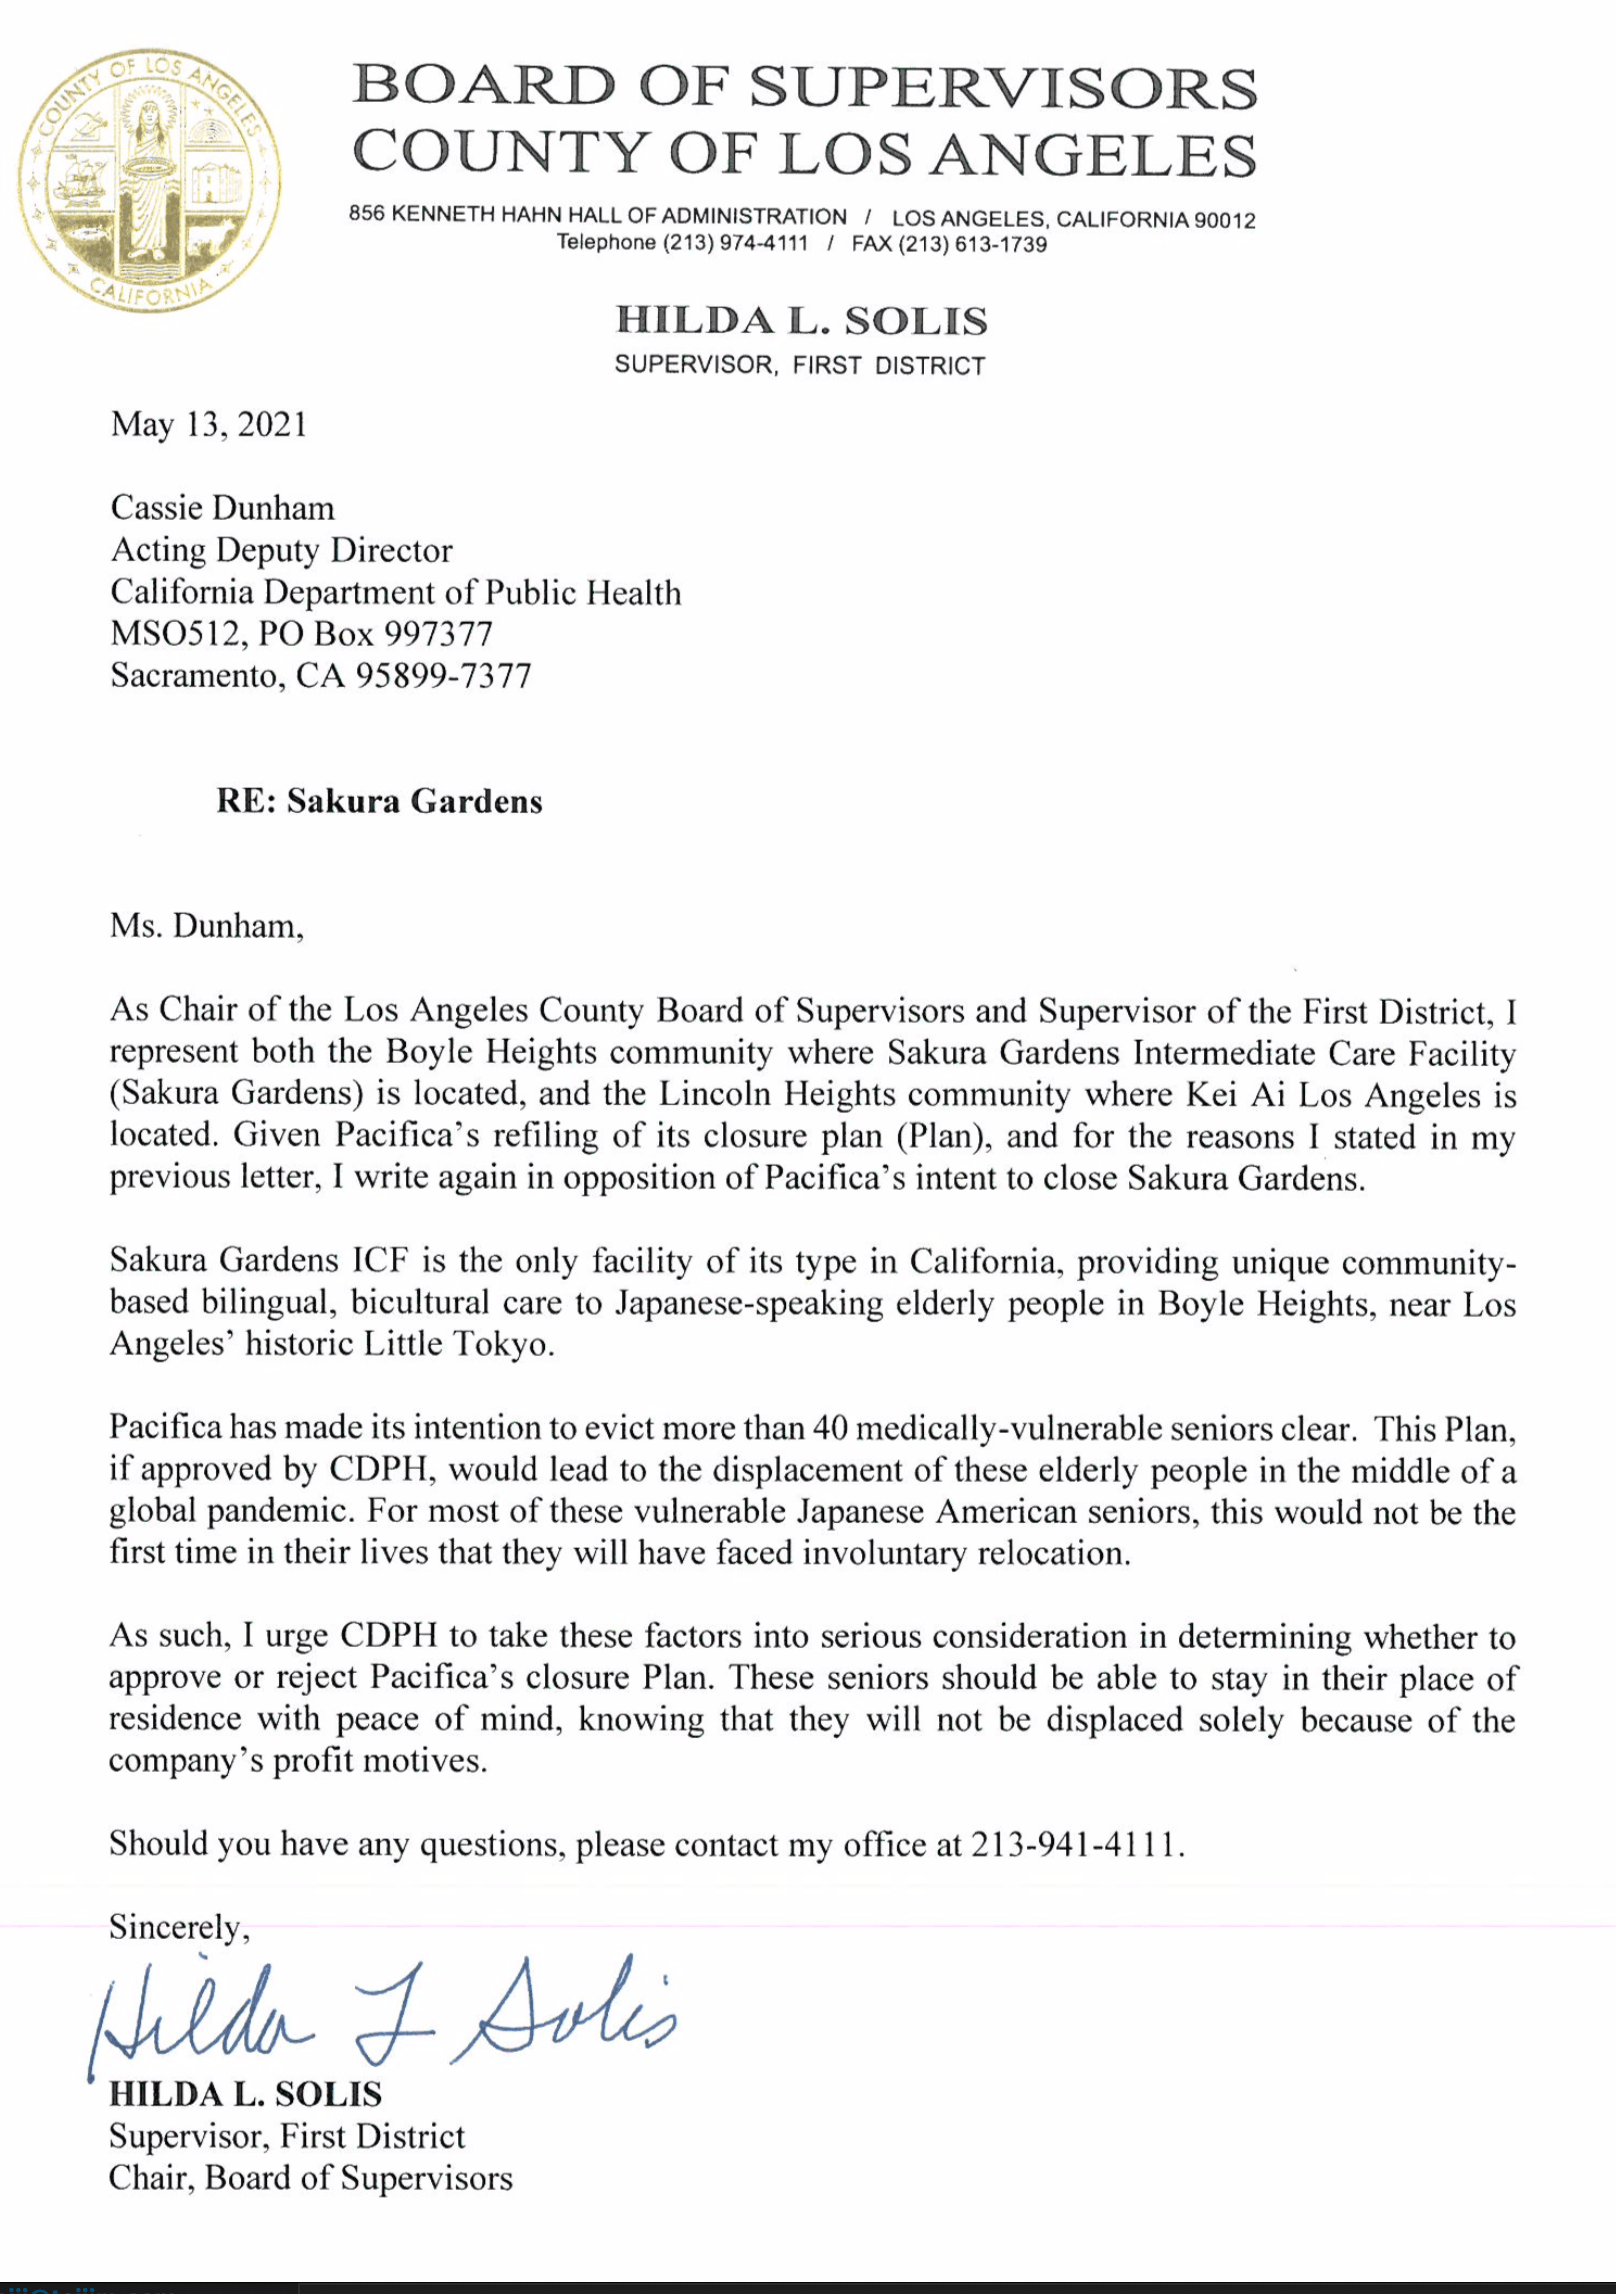 Hilda Solis - Letter to CDPH - Pacifica Plan V2